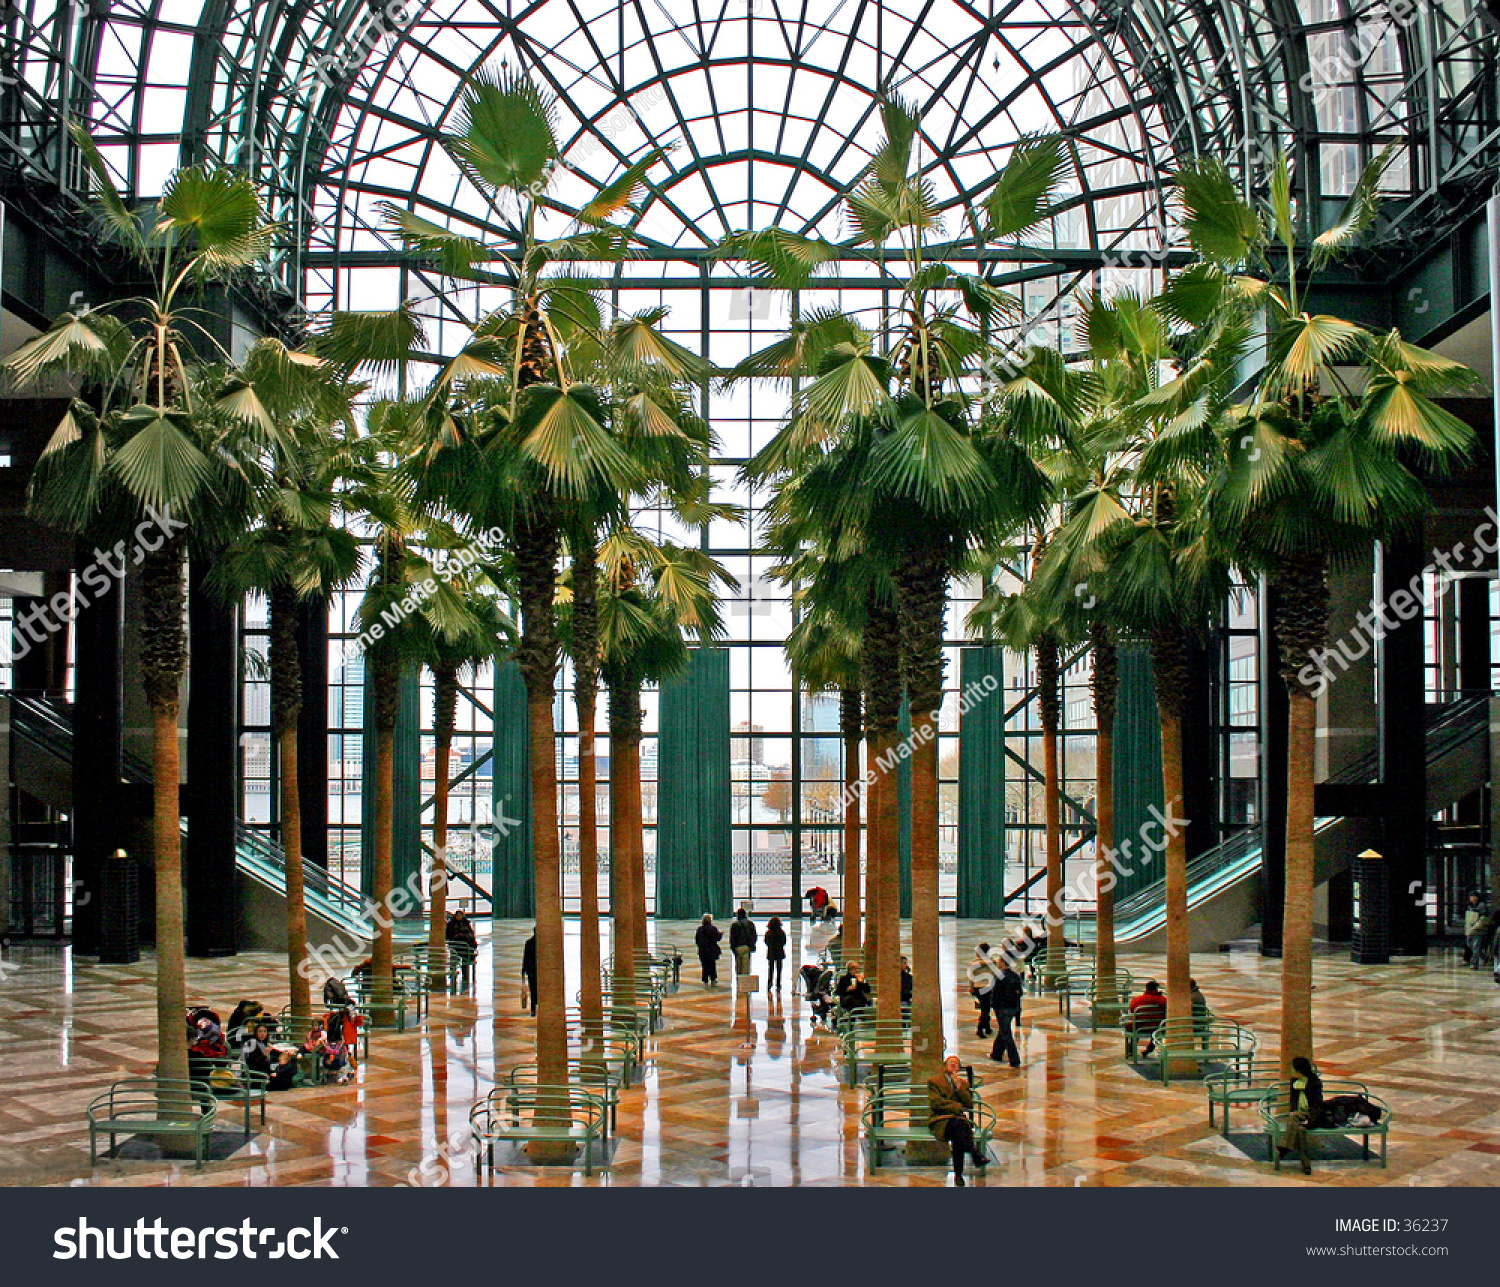 Interior Of Winter Garden Building In New York City Stock Photo 36237 Shutterstock